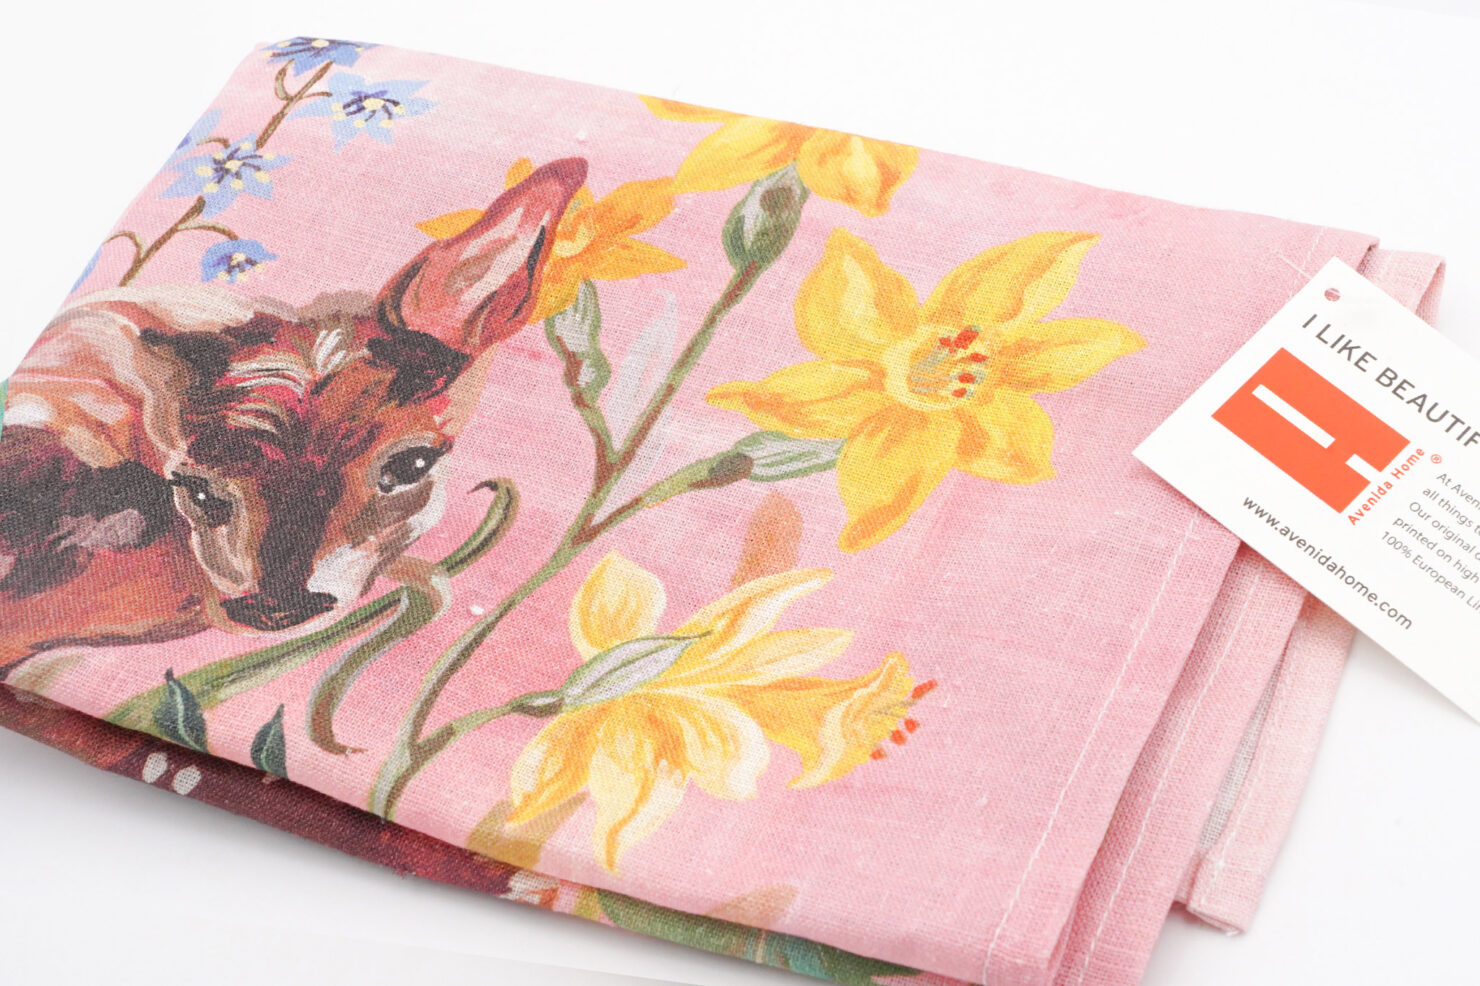 BAMBI T TOWEL KITCHEN & TABLE LINENS BY NATHALIE LETE-AVENIDA HOME